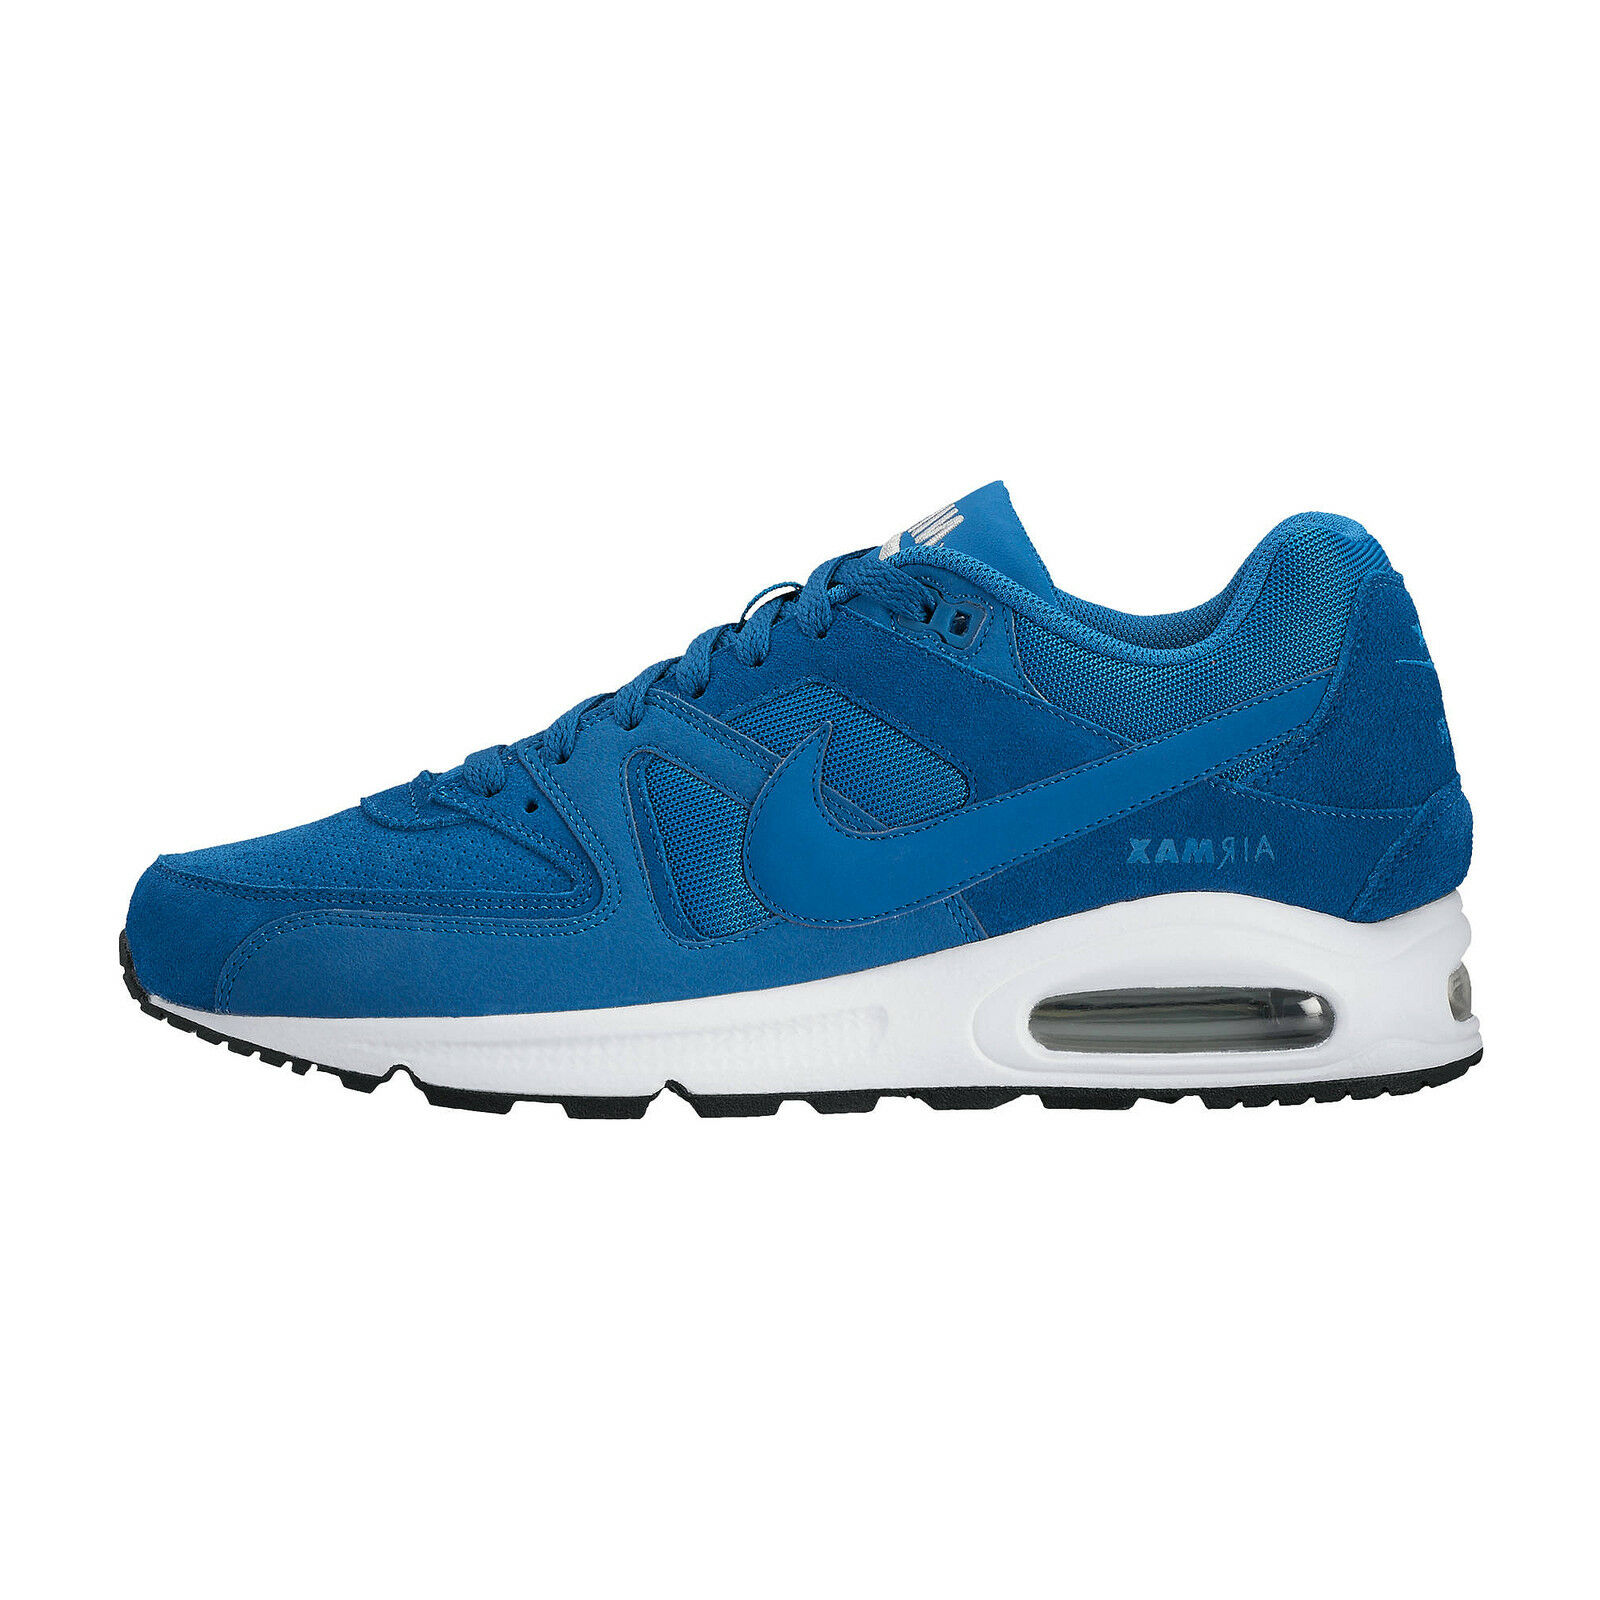 Nike Command Air Max Command Nike PRM 694862-404 Shoes Casual fca35a